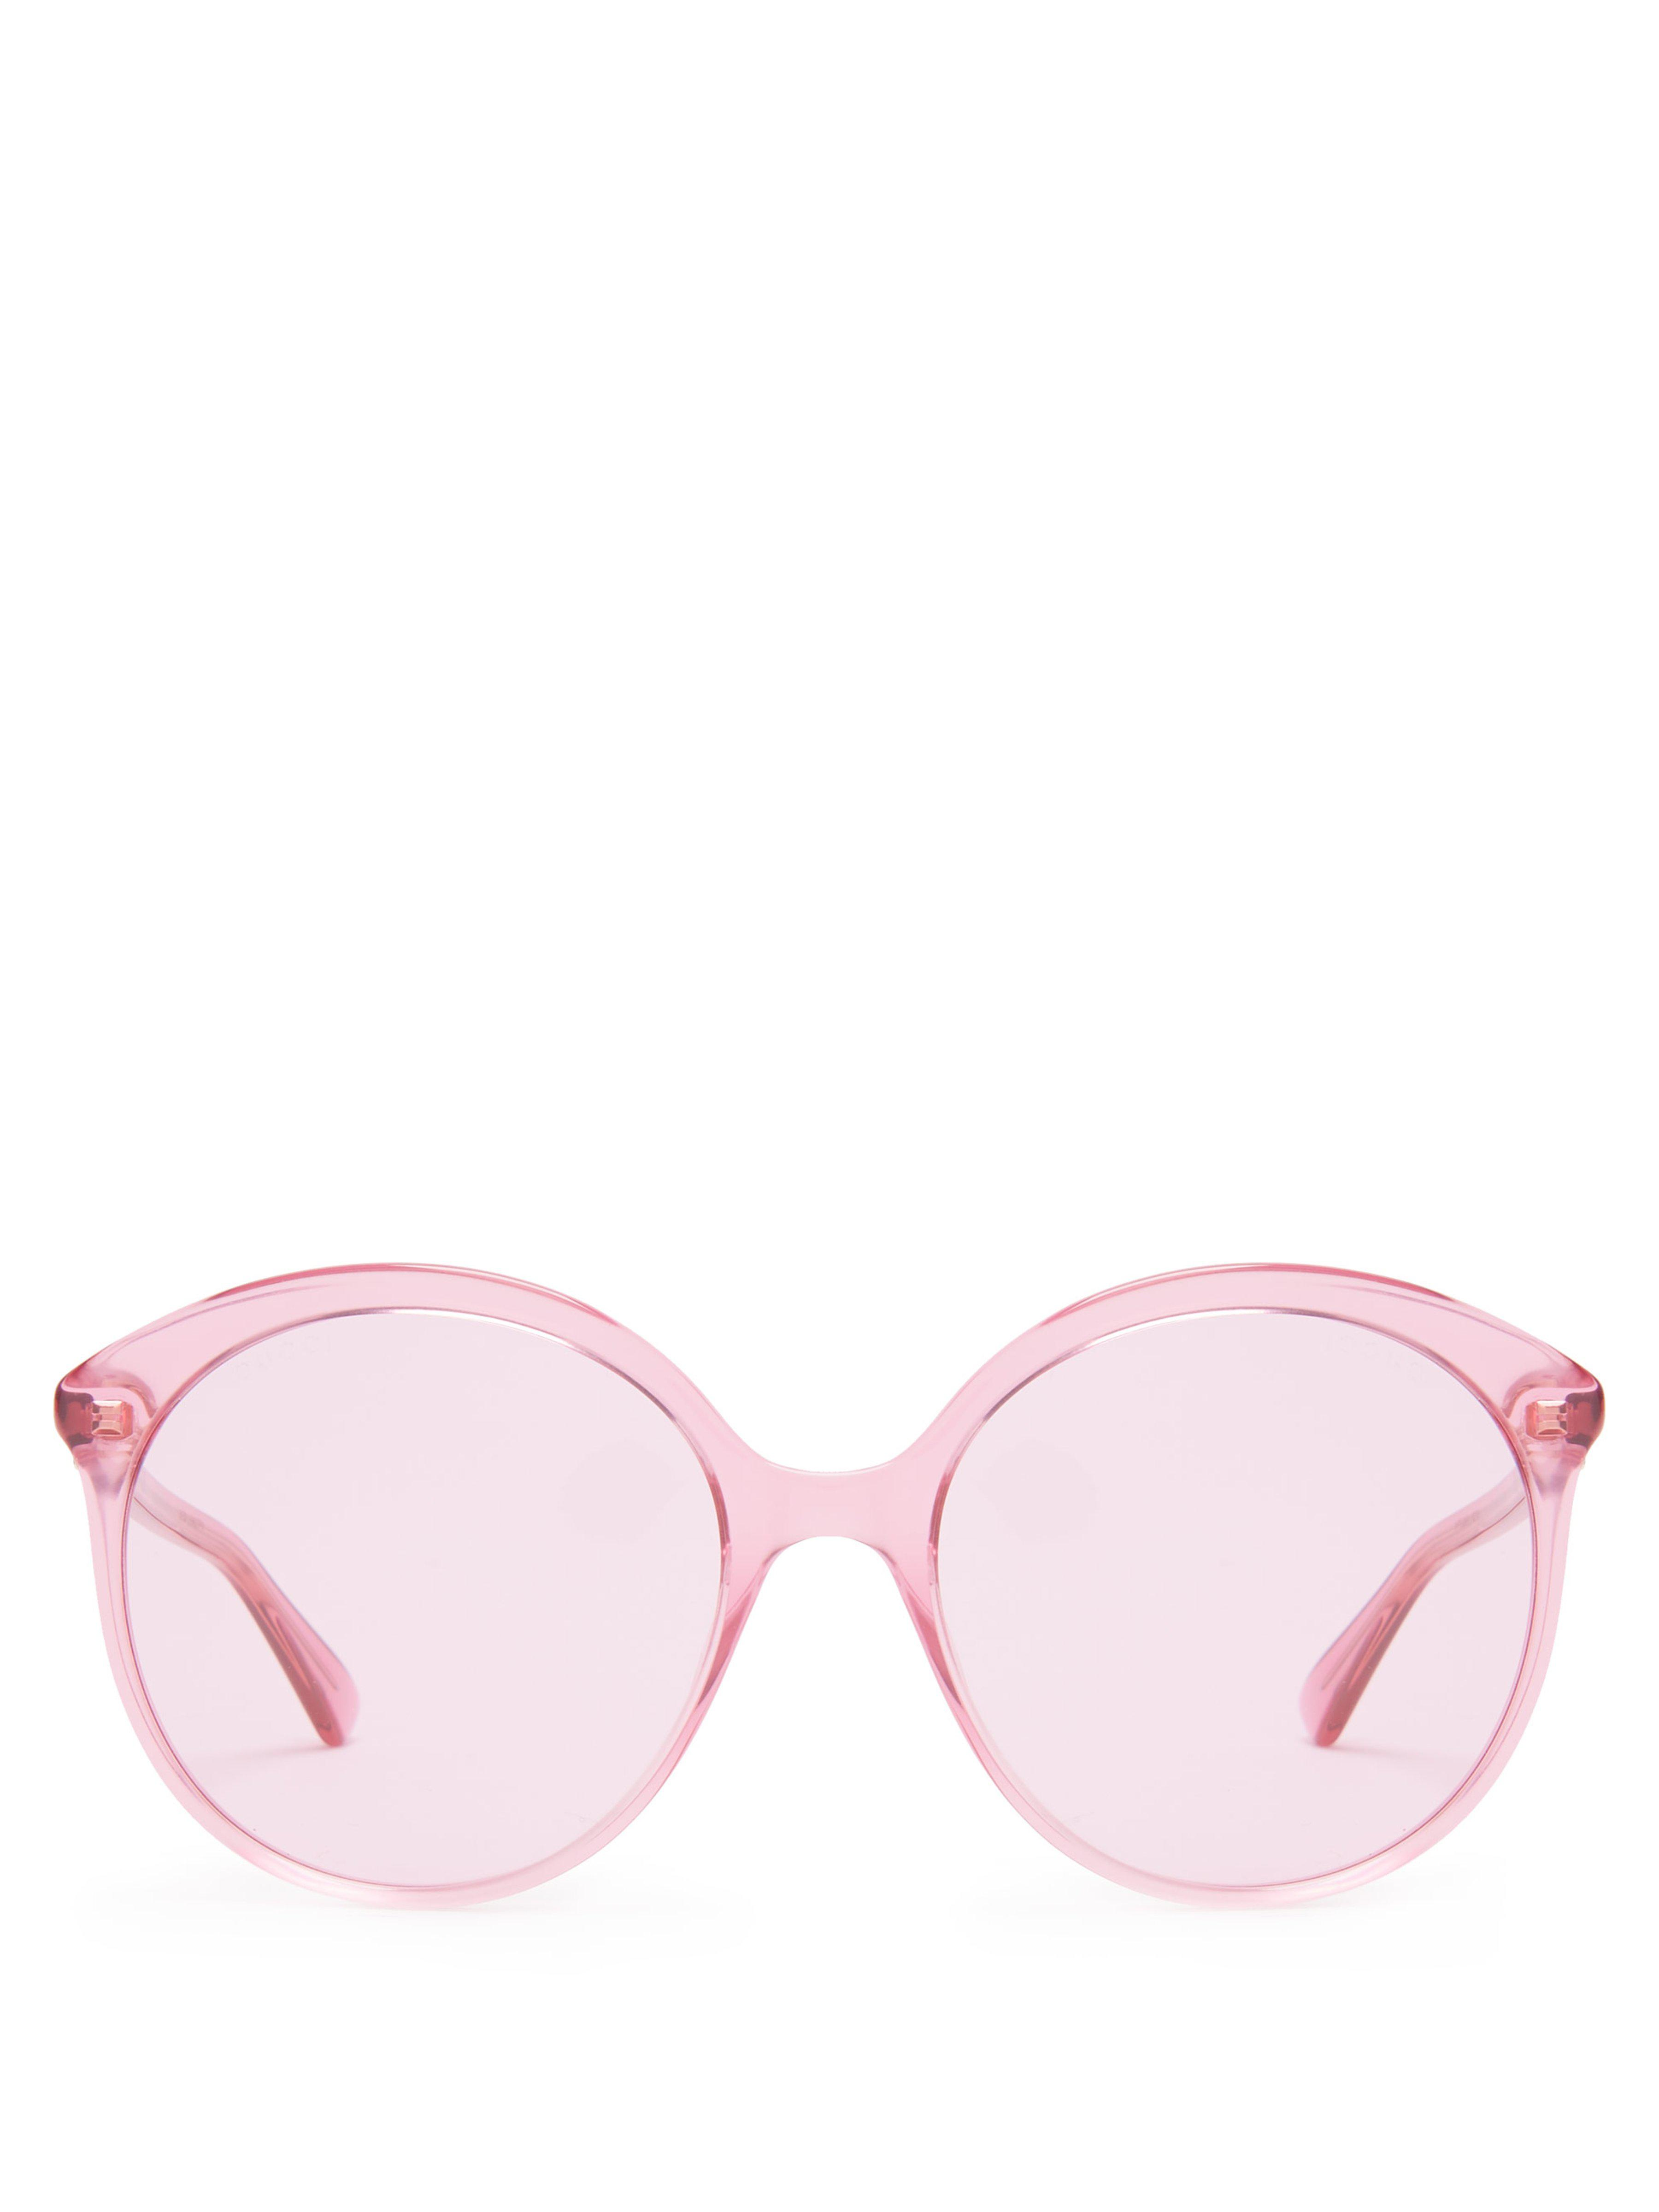 9b822a0ab9613 Gucci Round Cat Eye Frame Acetate Sunglasses in Pink - Lyst